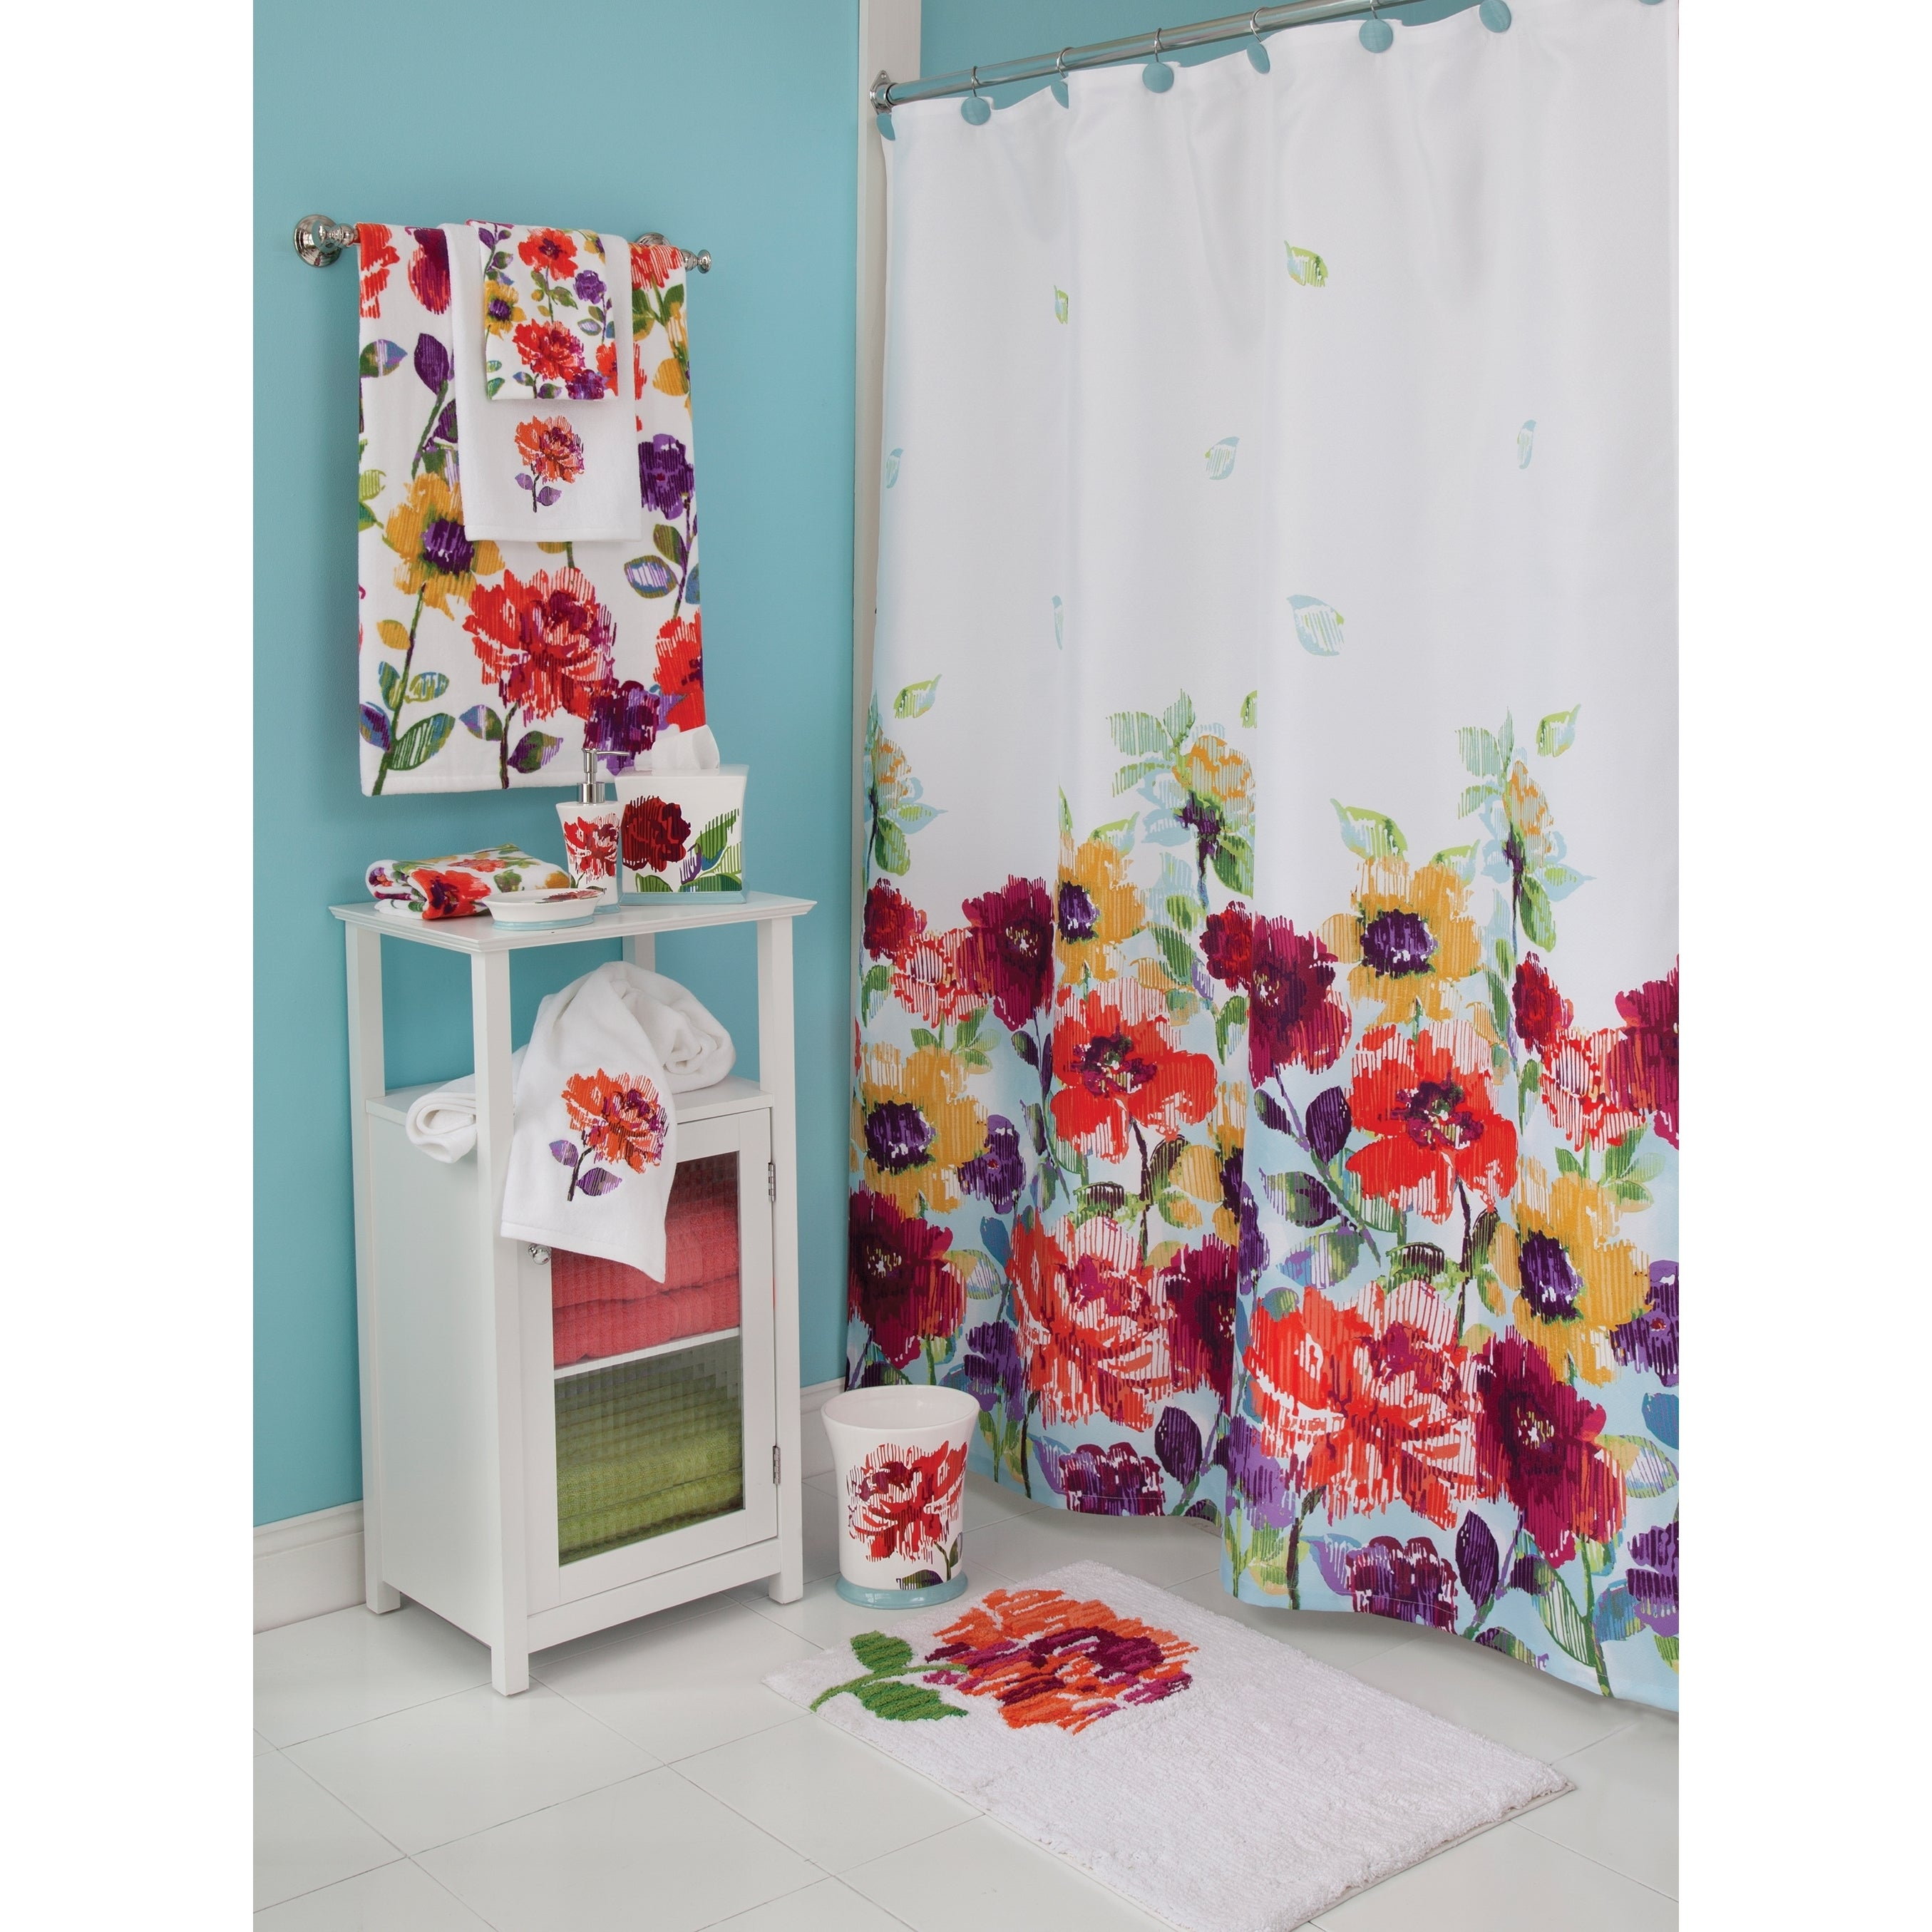 Graffiti Bedding And Curtains Fresco Bedding